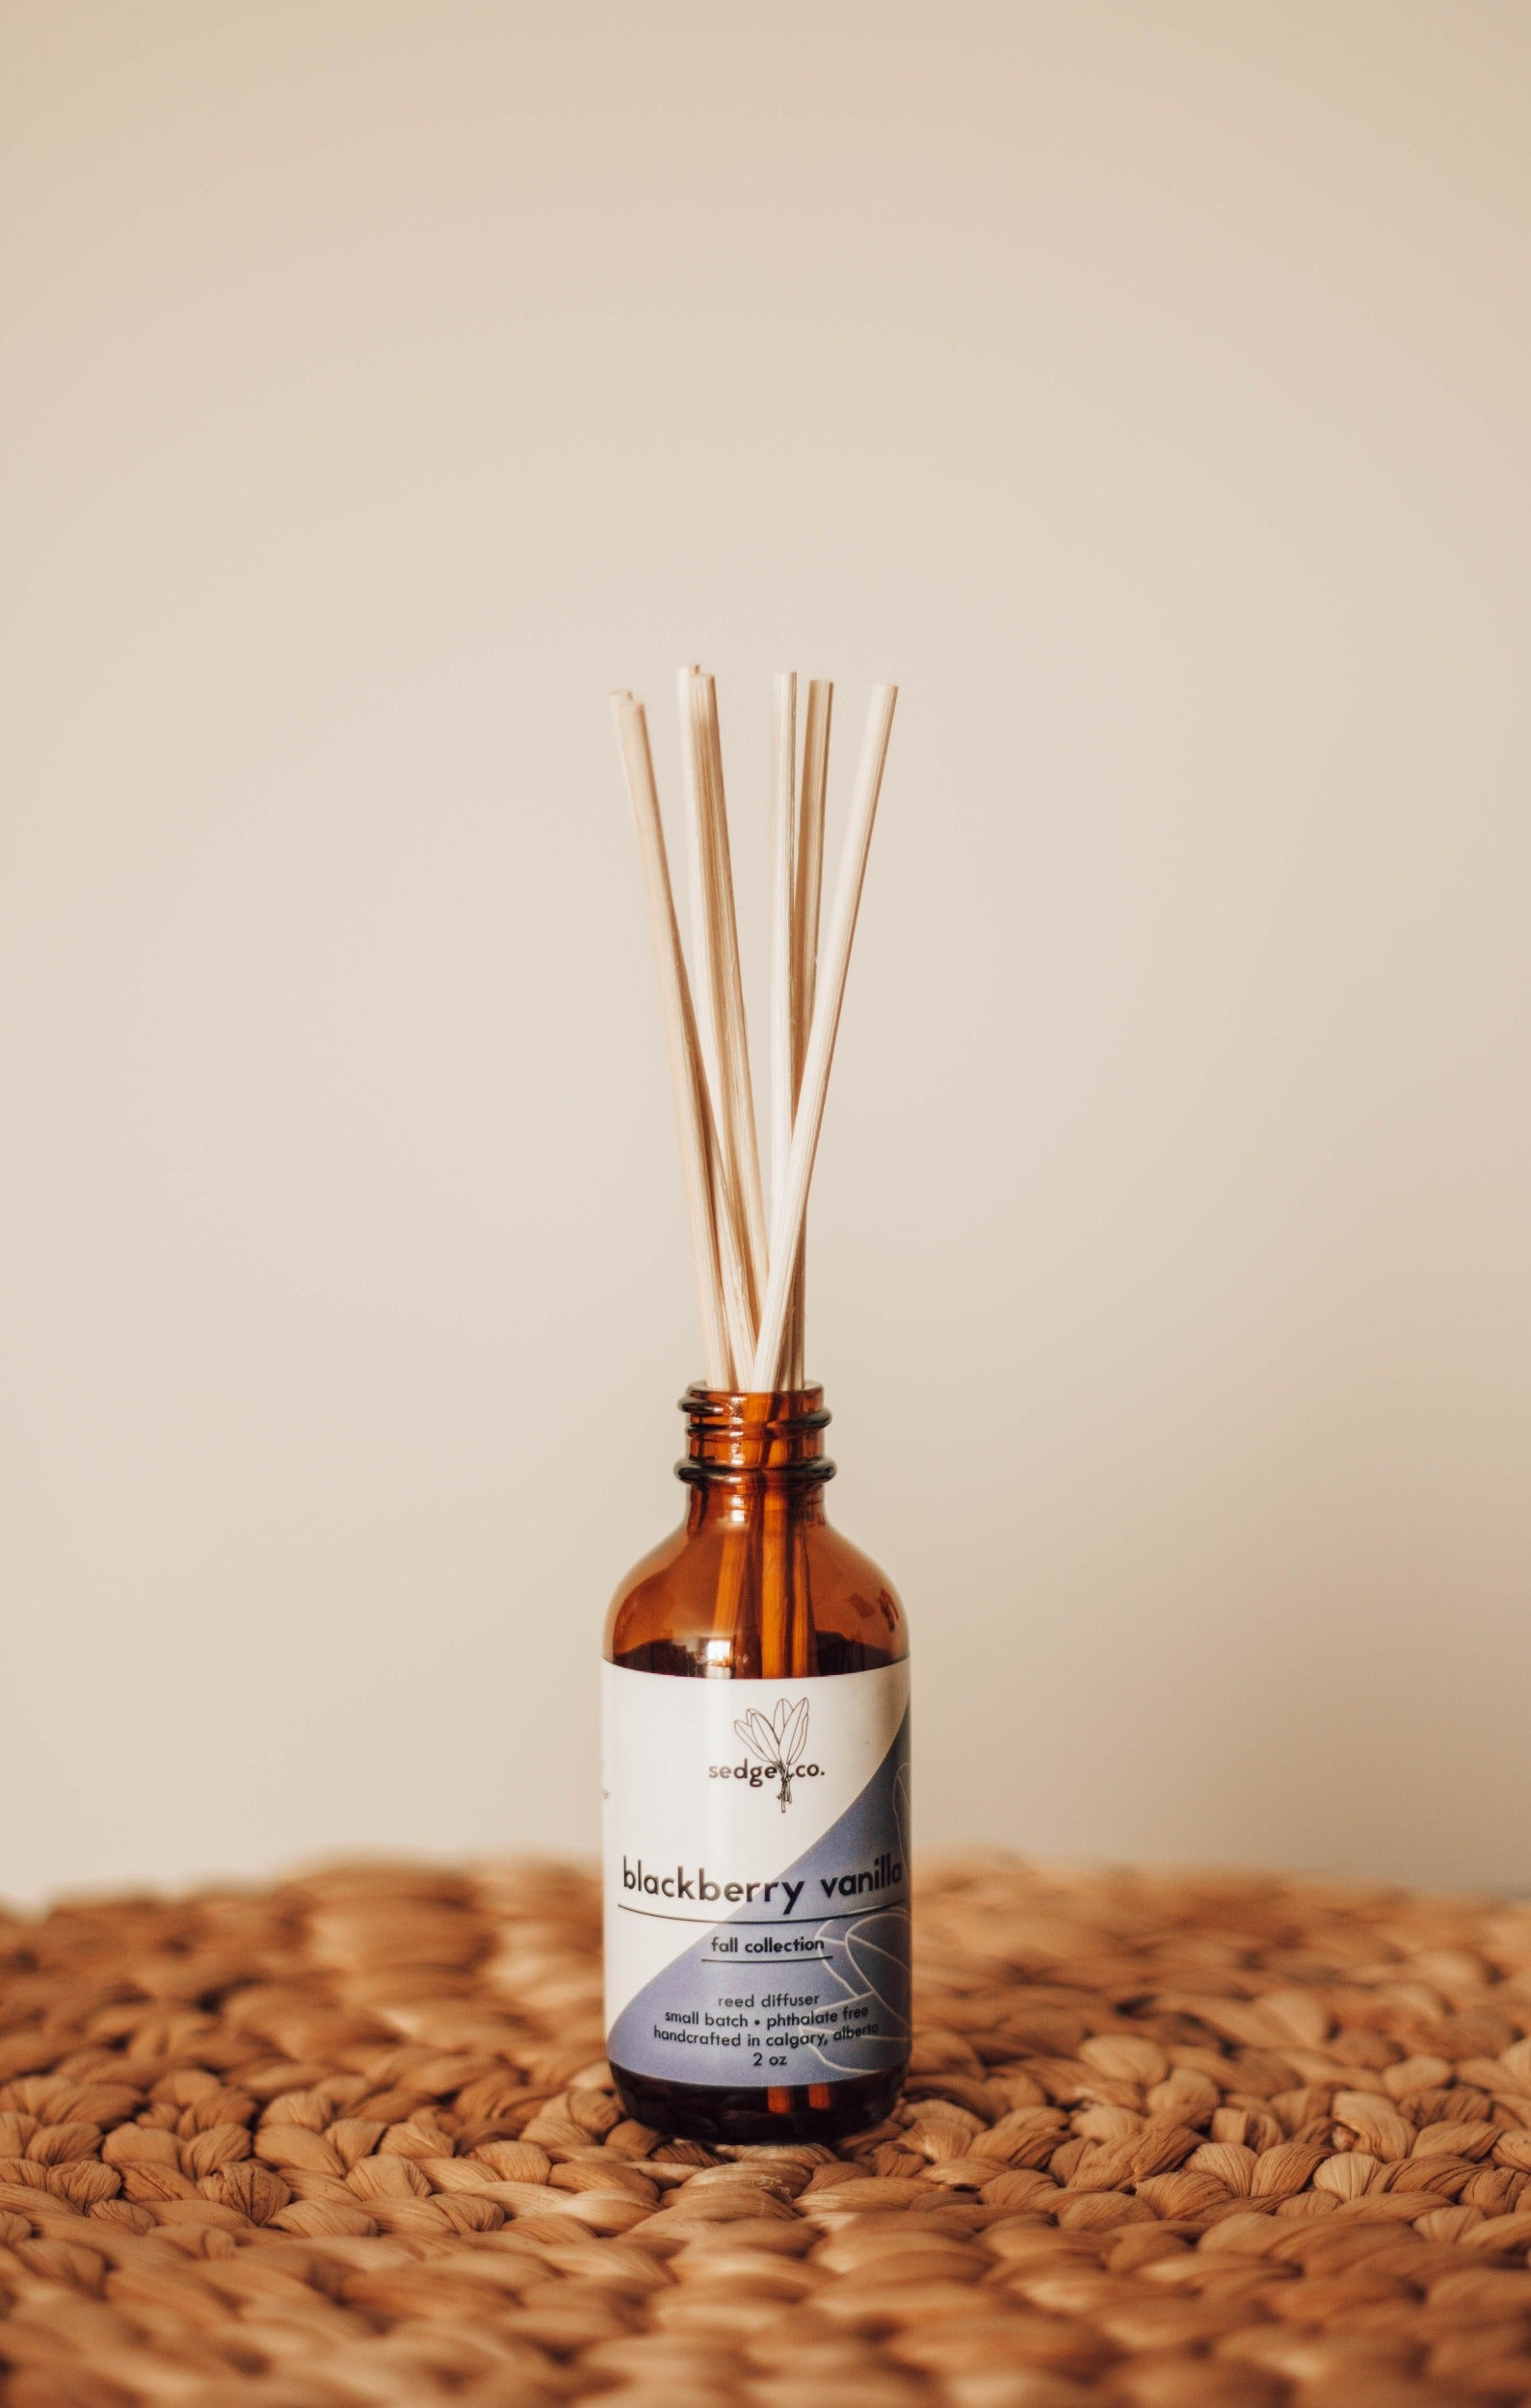 Blackberry Vanilla diffuser